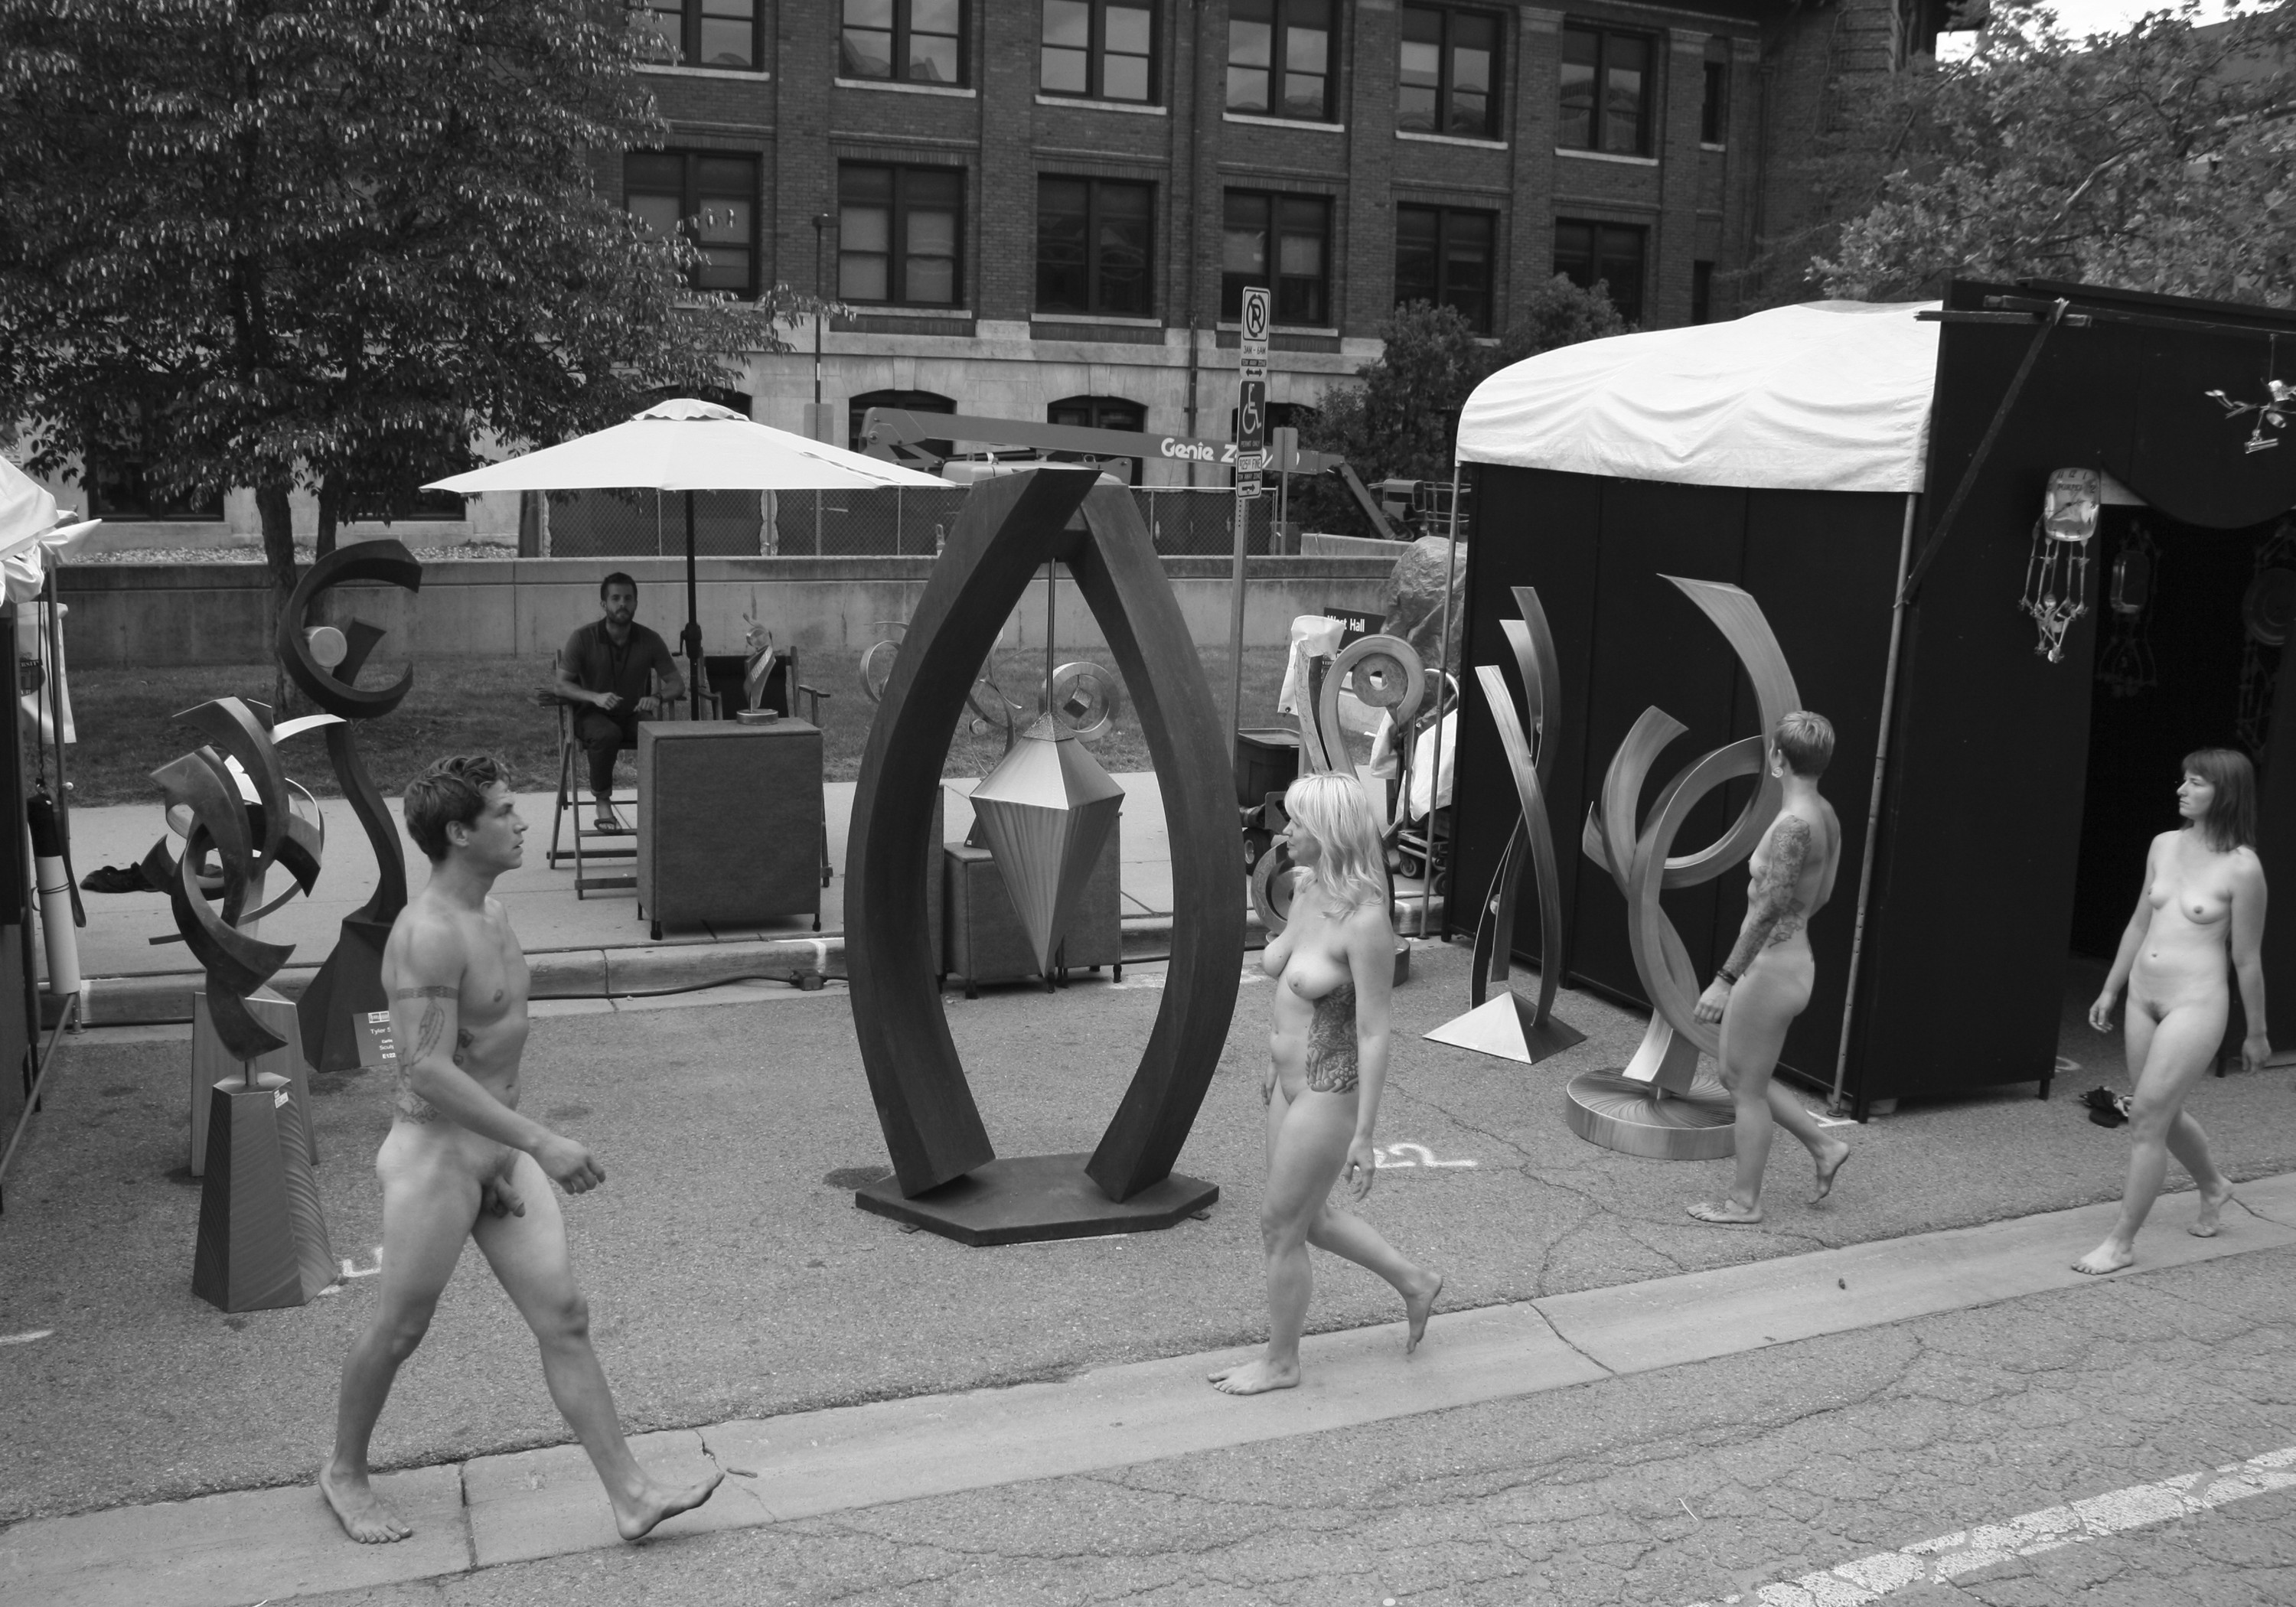 Street Photography At Art Fair On >> Enjoy Harvey Drouillard S Nsfw Nudes From This Year S Ann Arbor Art